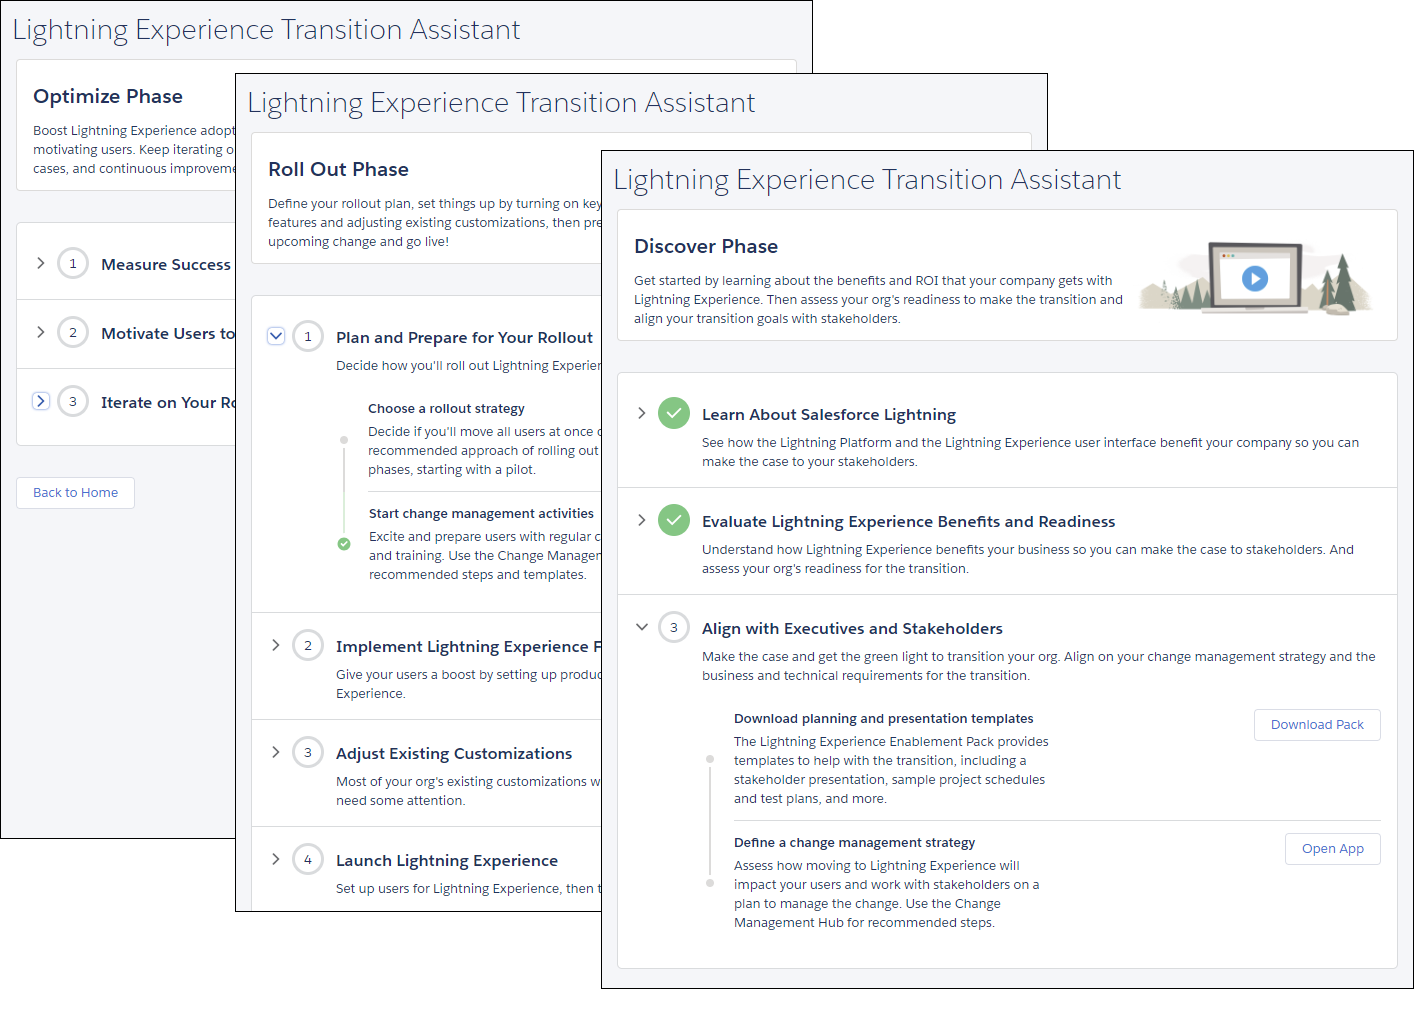 Screenshot of the Discover, Roll Out, and Optimize phase pages in the Lightning Experience Transition Assistant